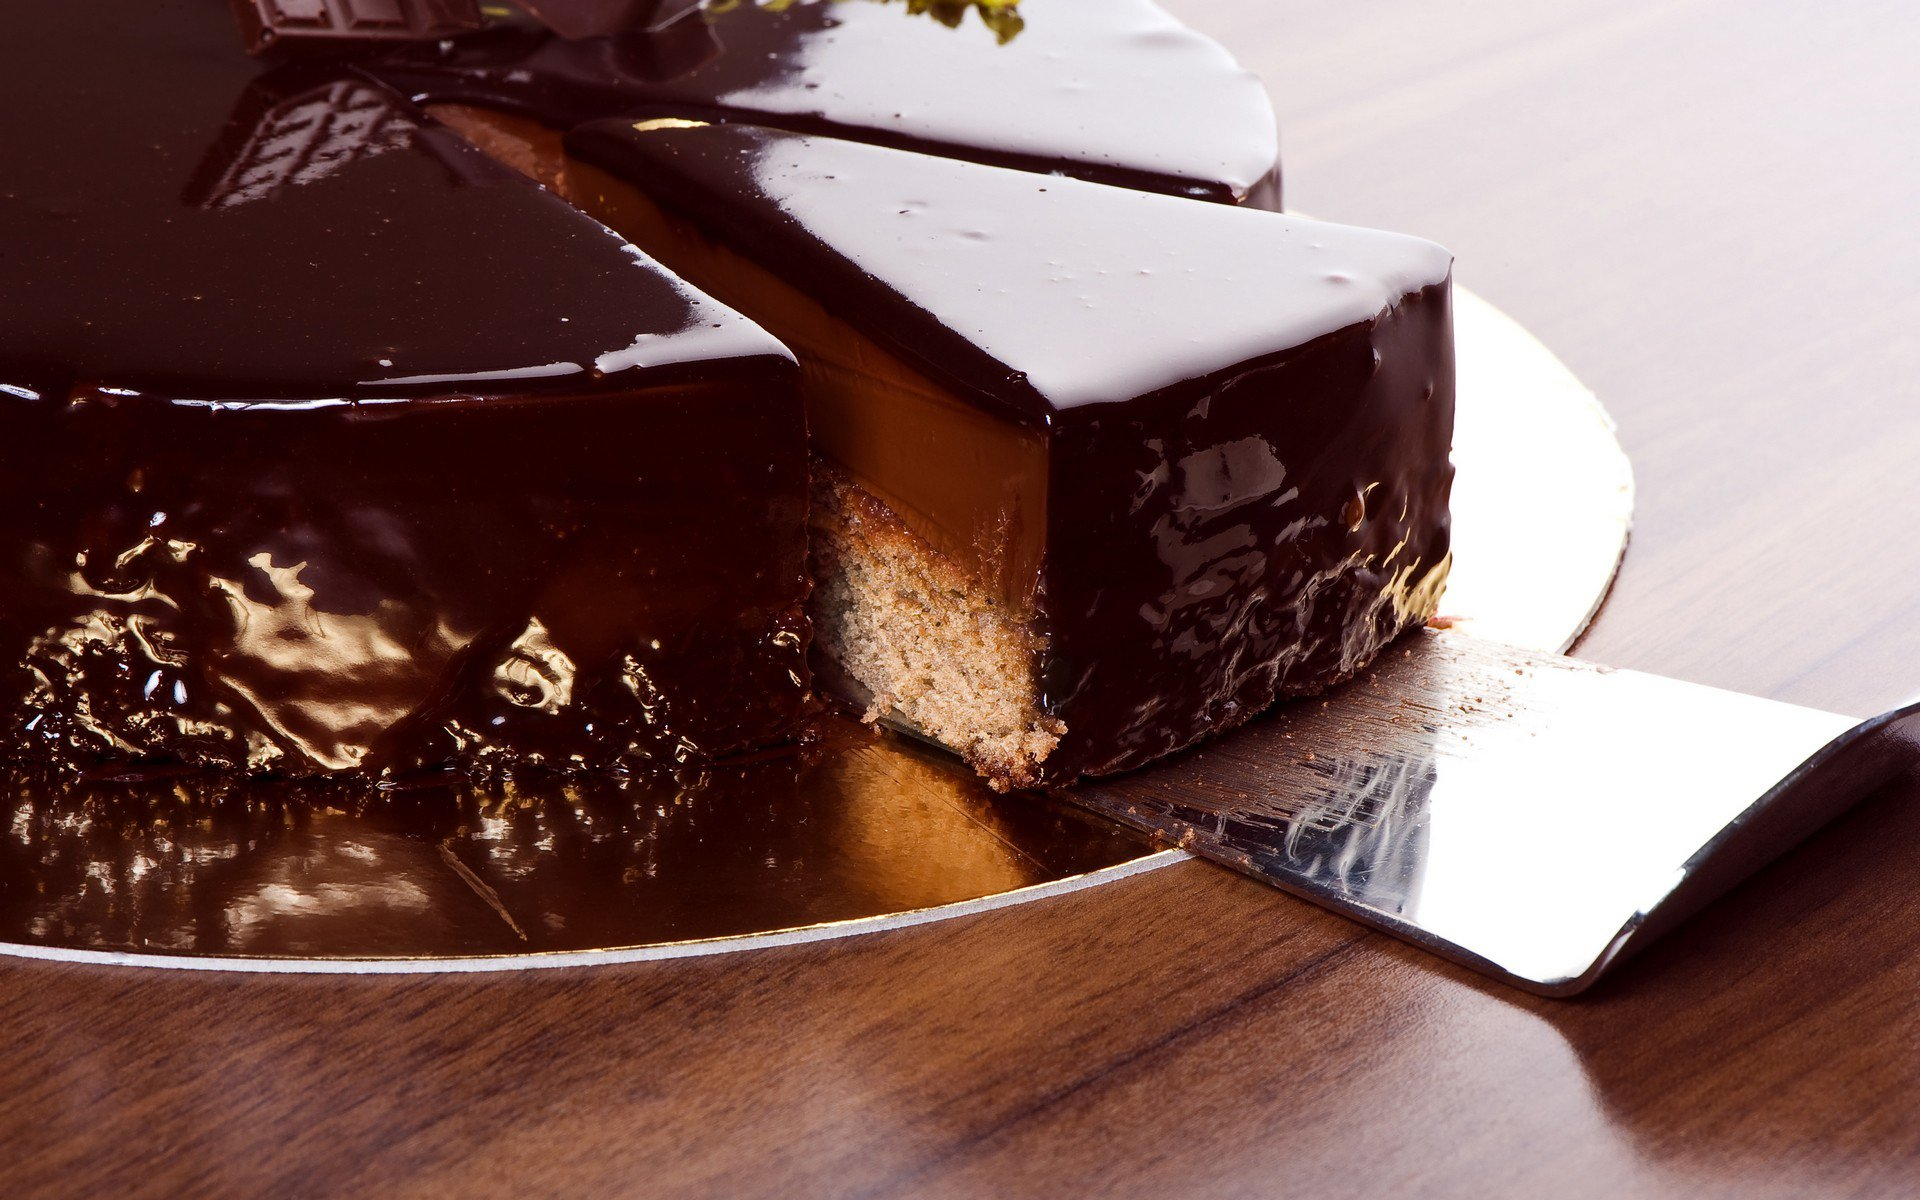 Food - Cake  Chocolate Pastry Dessert Wallpaper